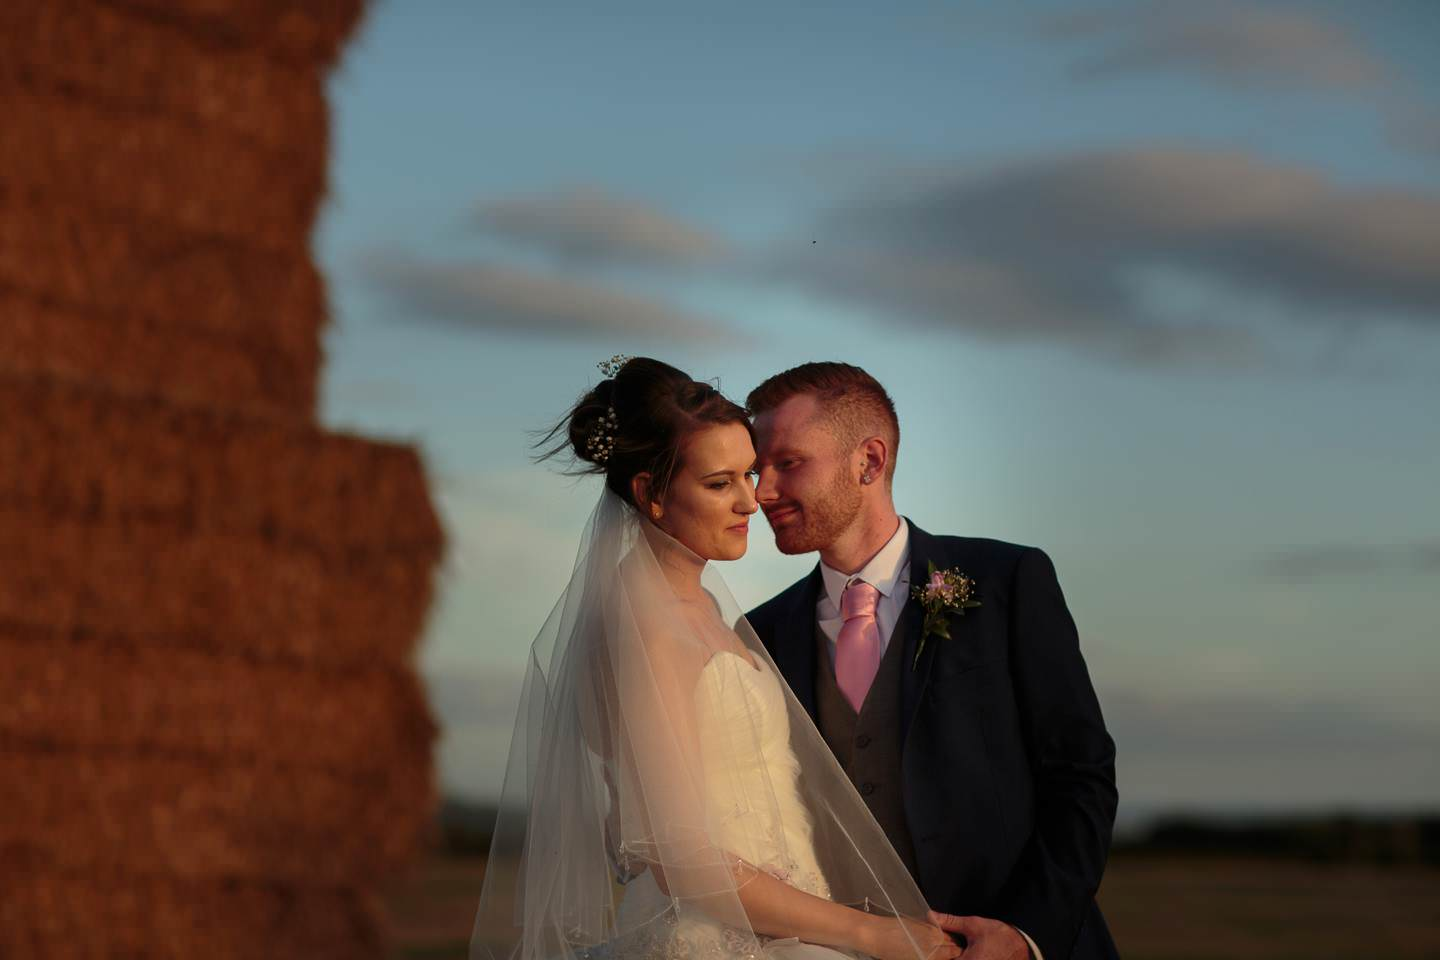 Ade and Rachael enjoying some beautiful light at their albright hussey shropshire wedding photography